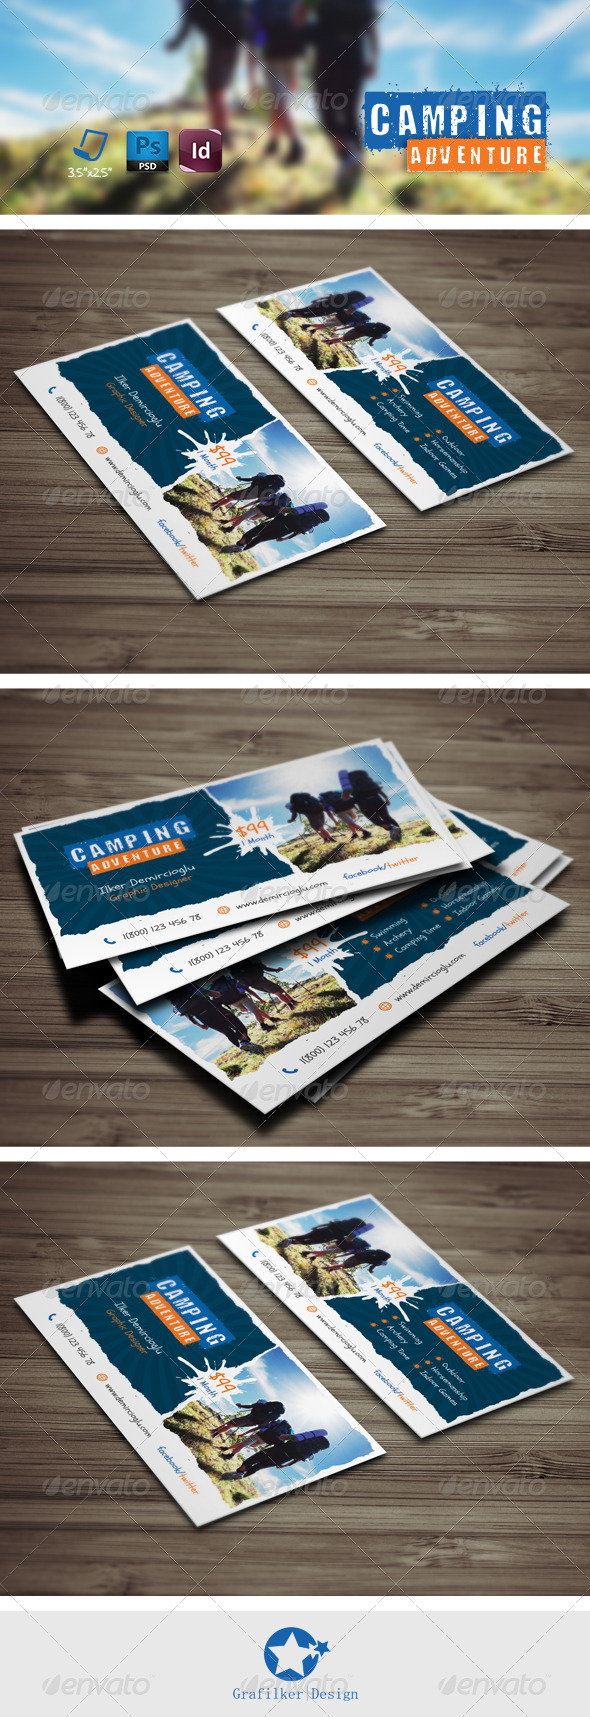 Camping adventure business card templates by grafilker graphicriver camping adventure business card templates cheaphphosting Images